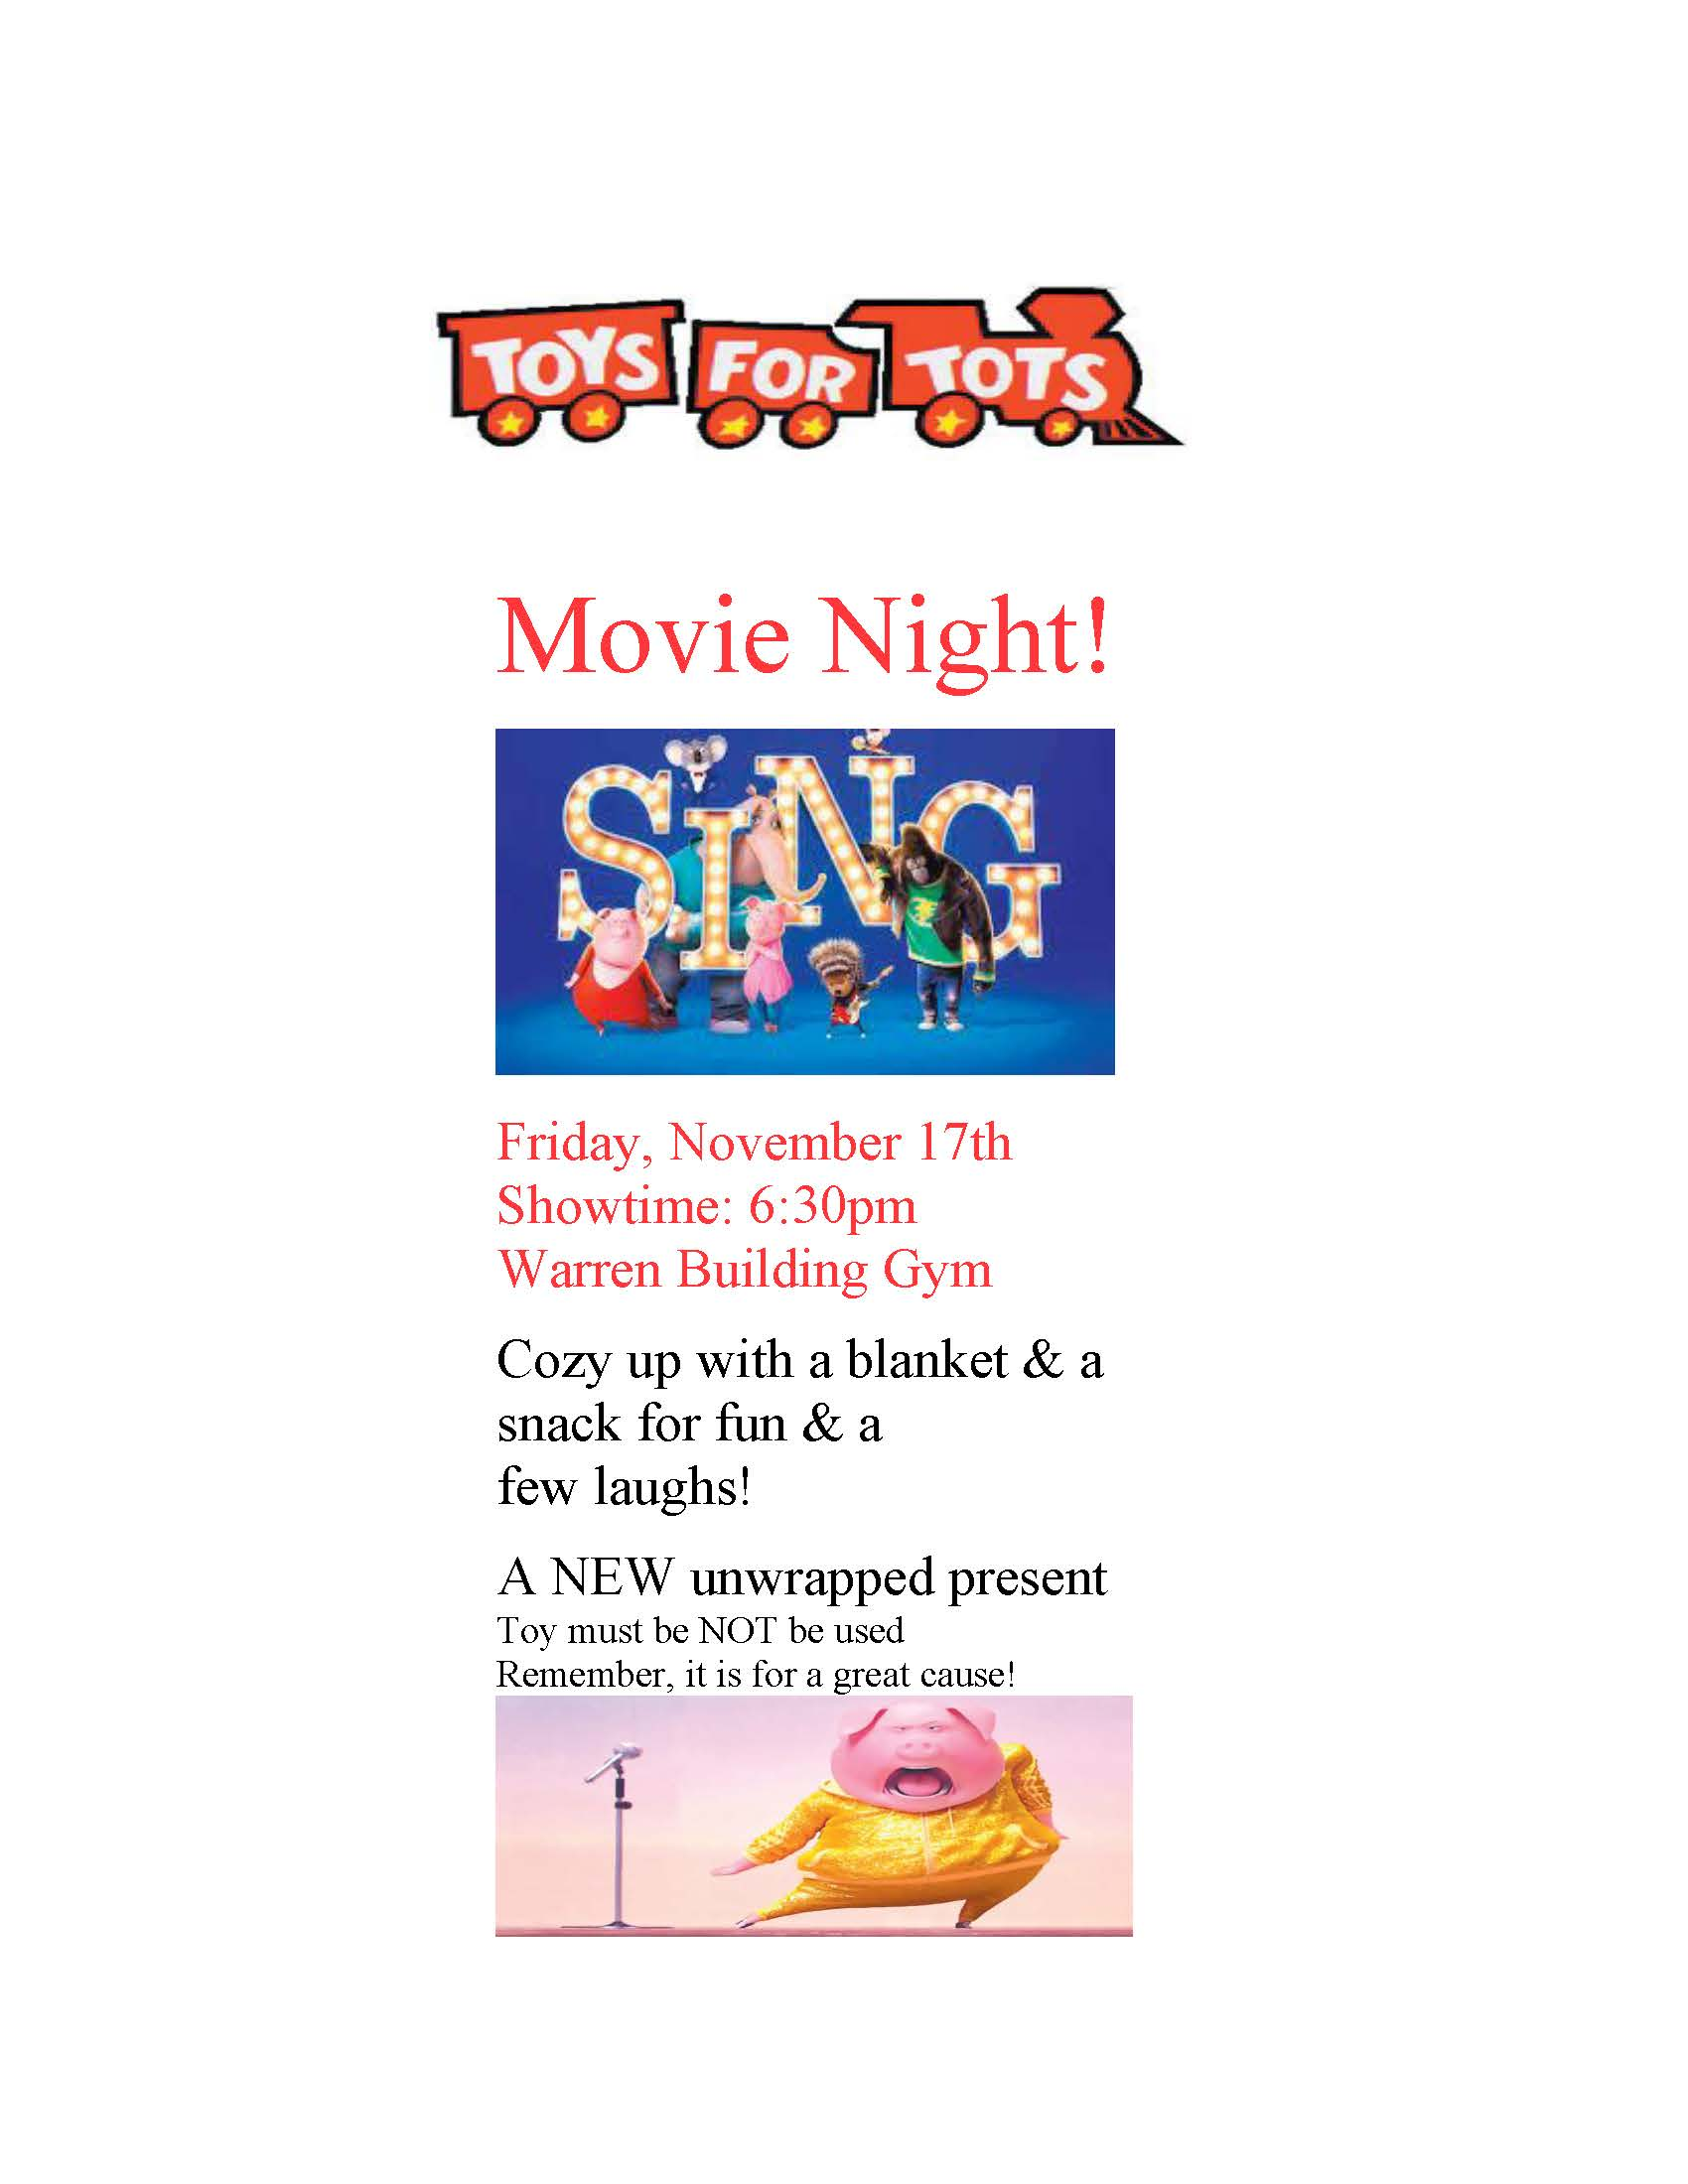 Movie Night toys for tots